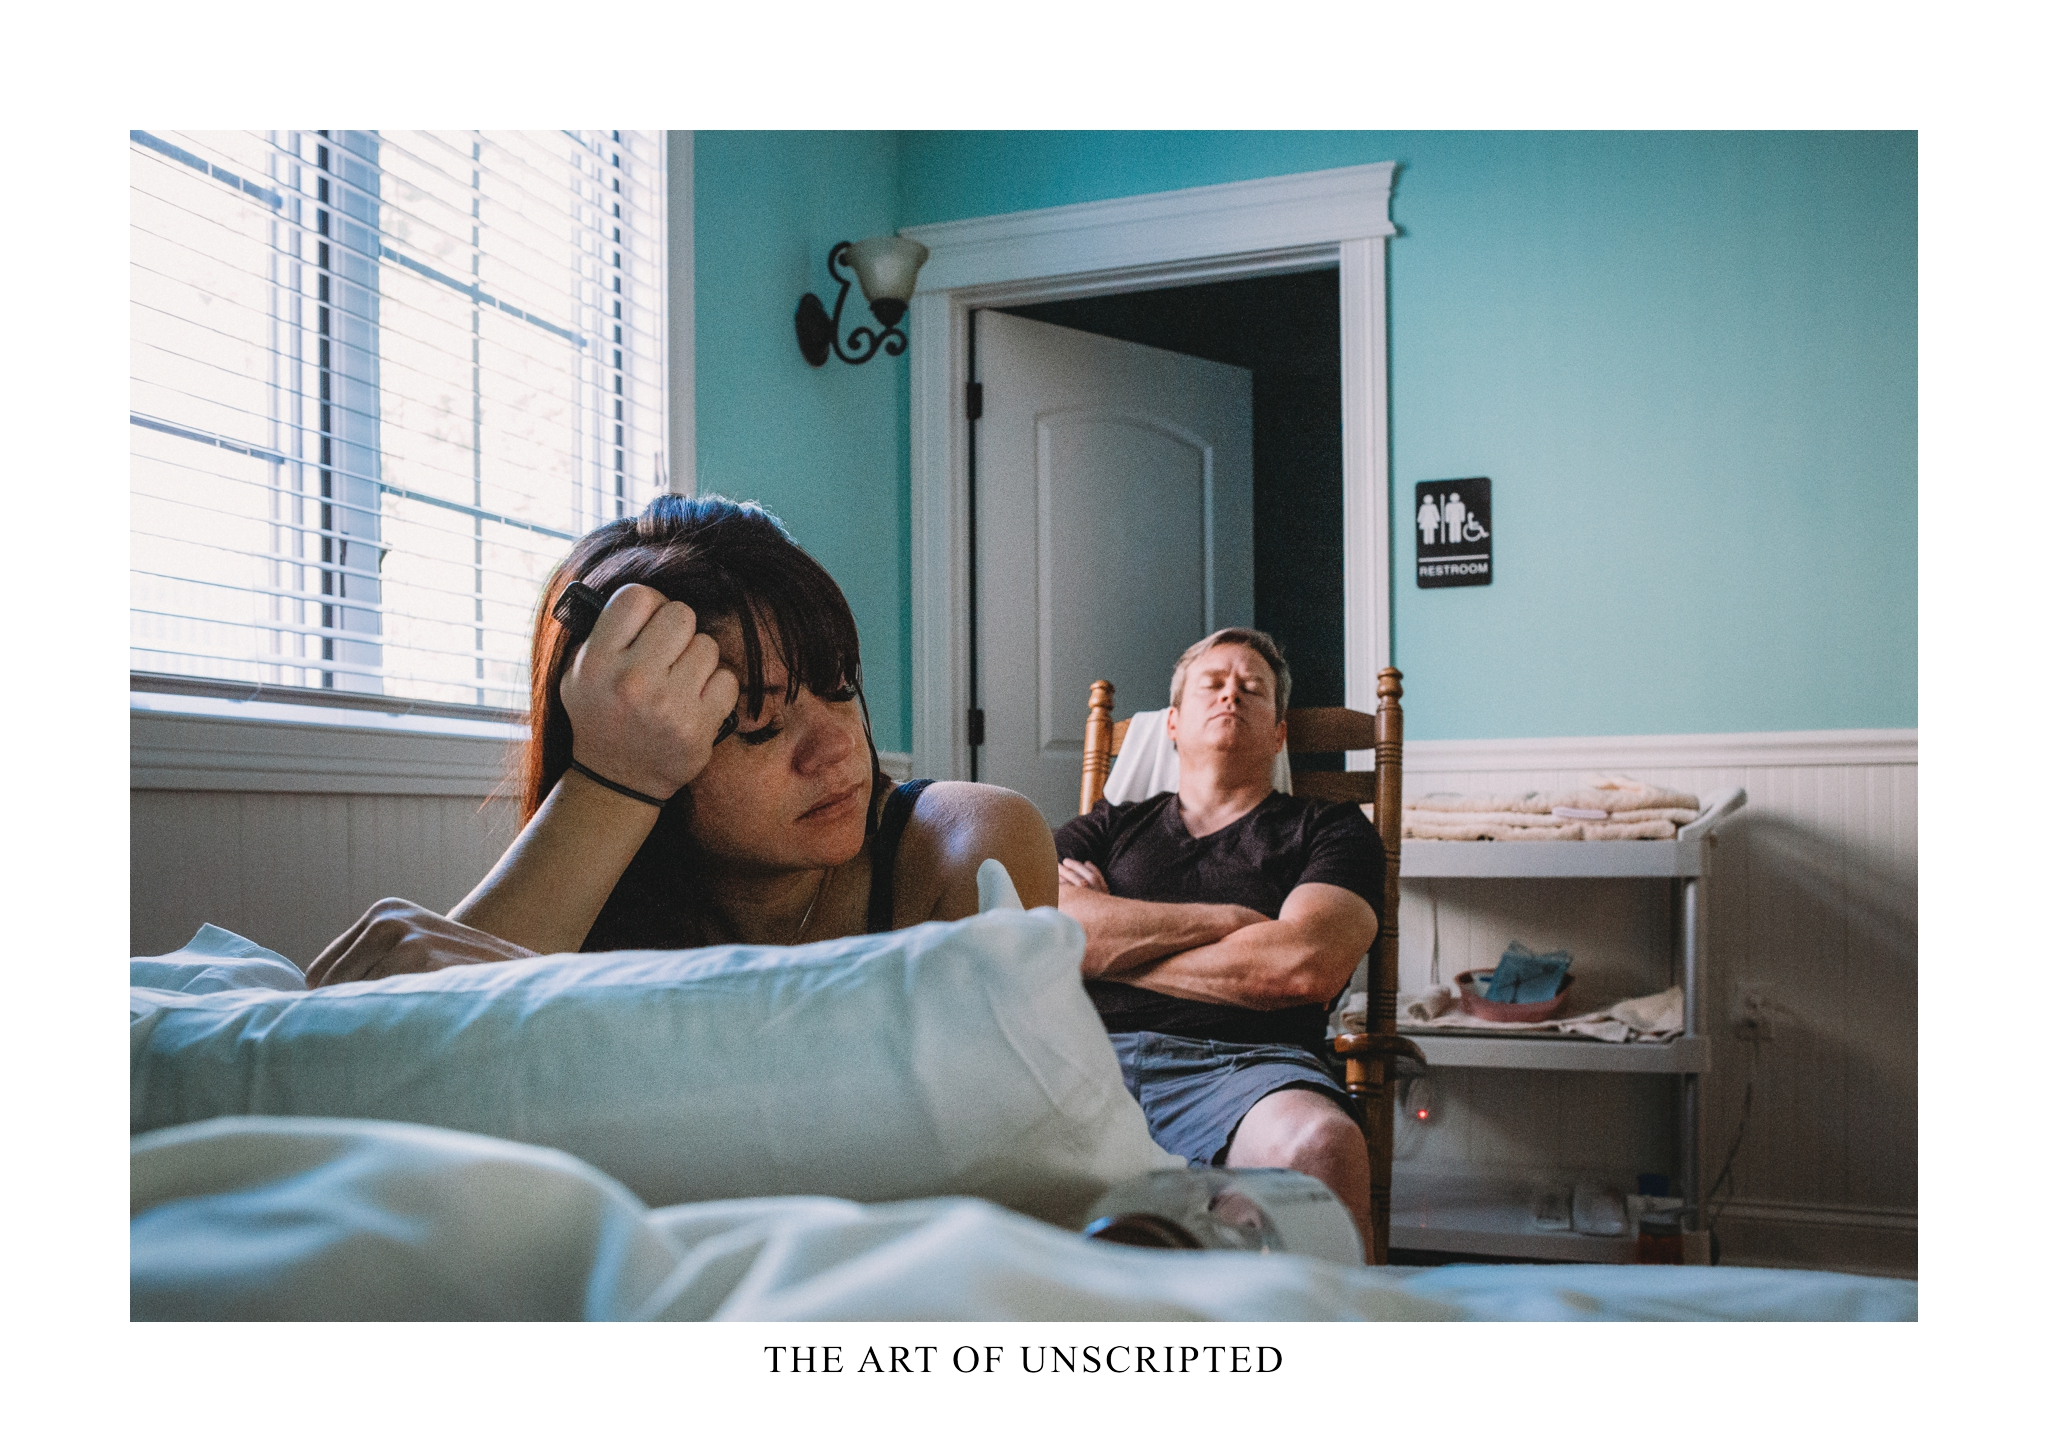 2017-06-10_071543__THE ART OF UNSCRIPTED_SPRINGFIELD MO_BIRTH PHOTOGRAPHER_ DOCUMENTARY_STORYTELLING_417_PHOTOGRAPHER